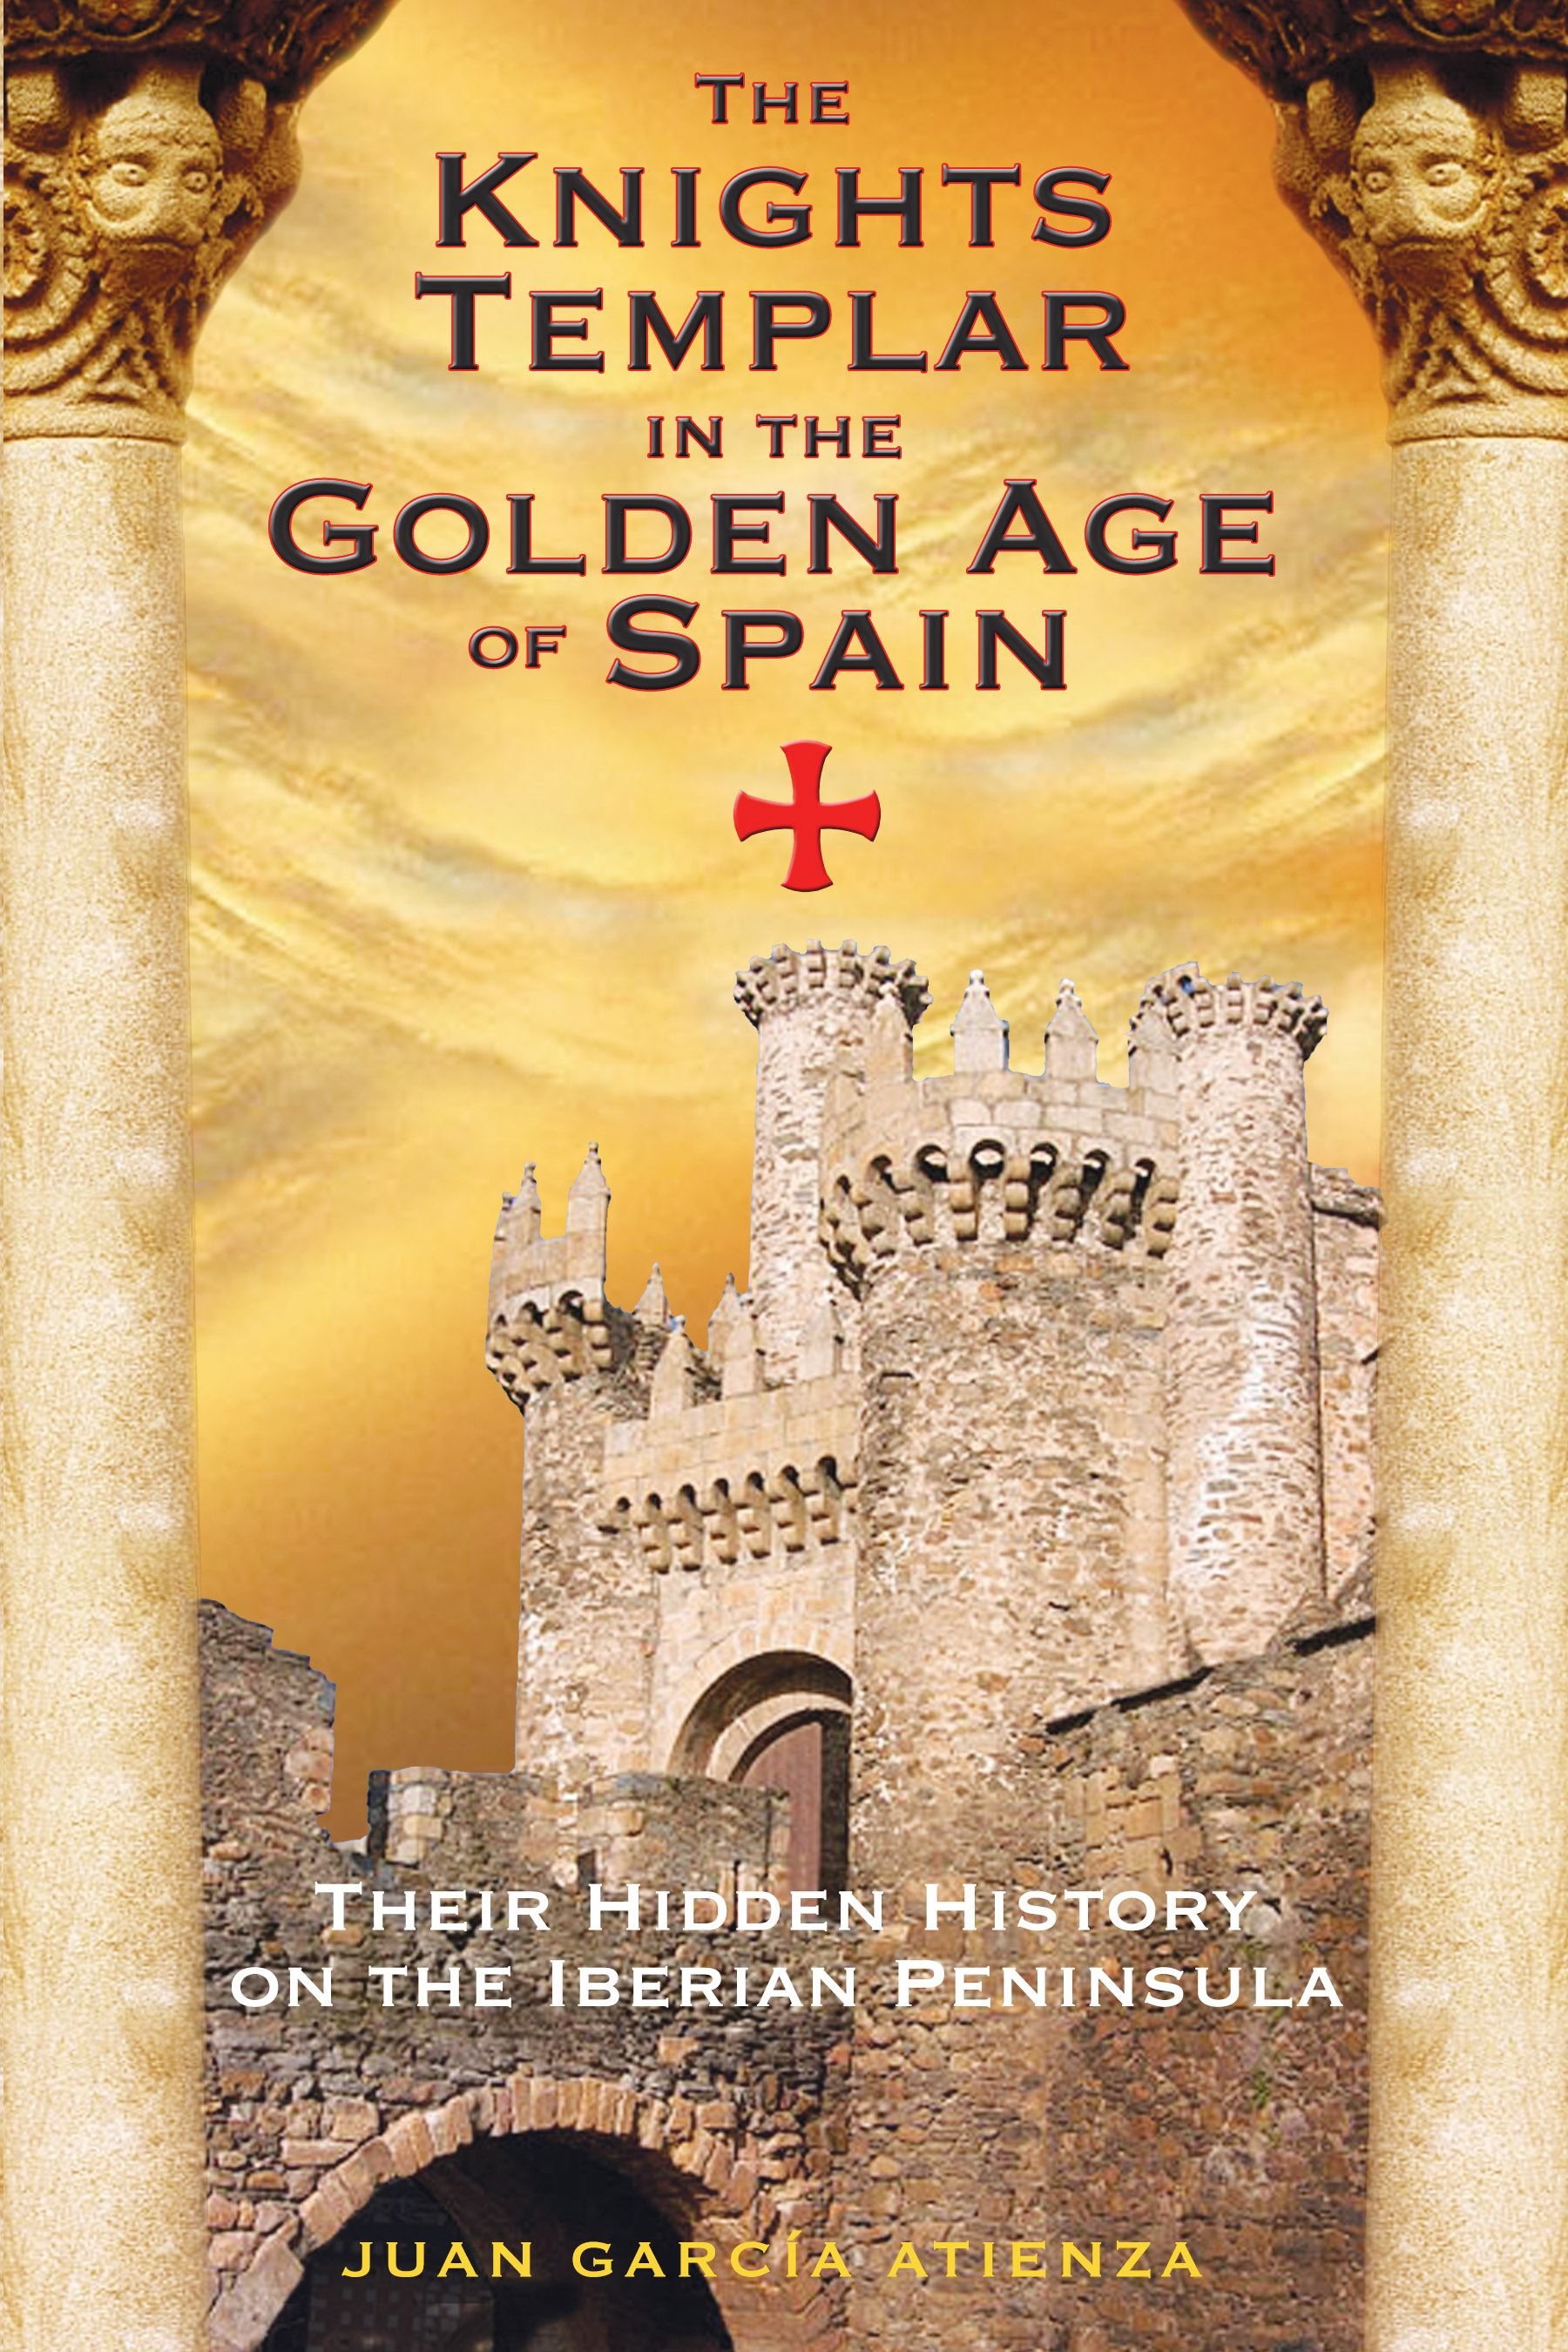 The Knights Templar in the Golden Age of Spain | Book by